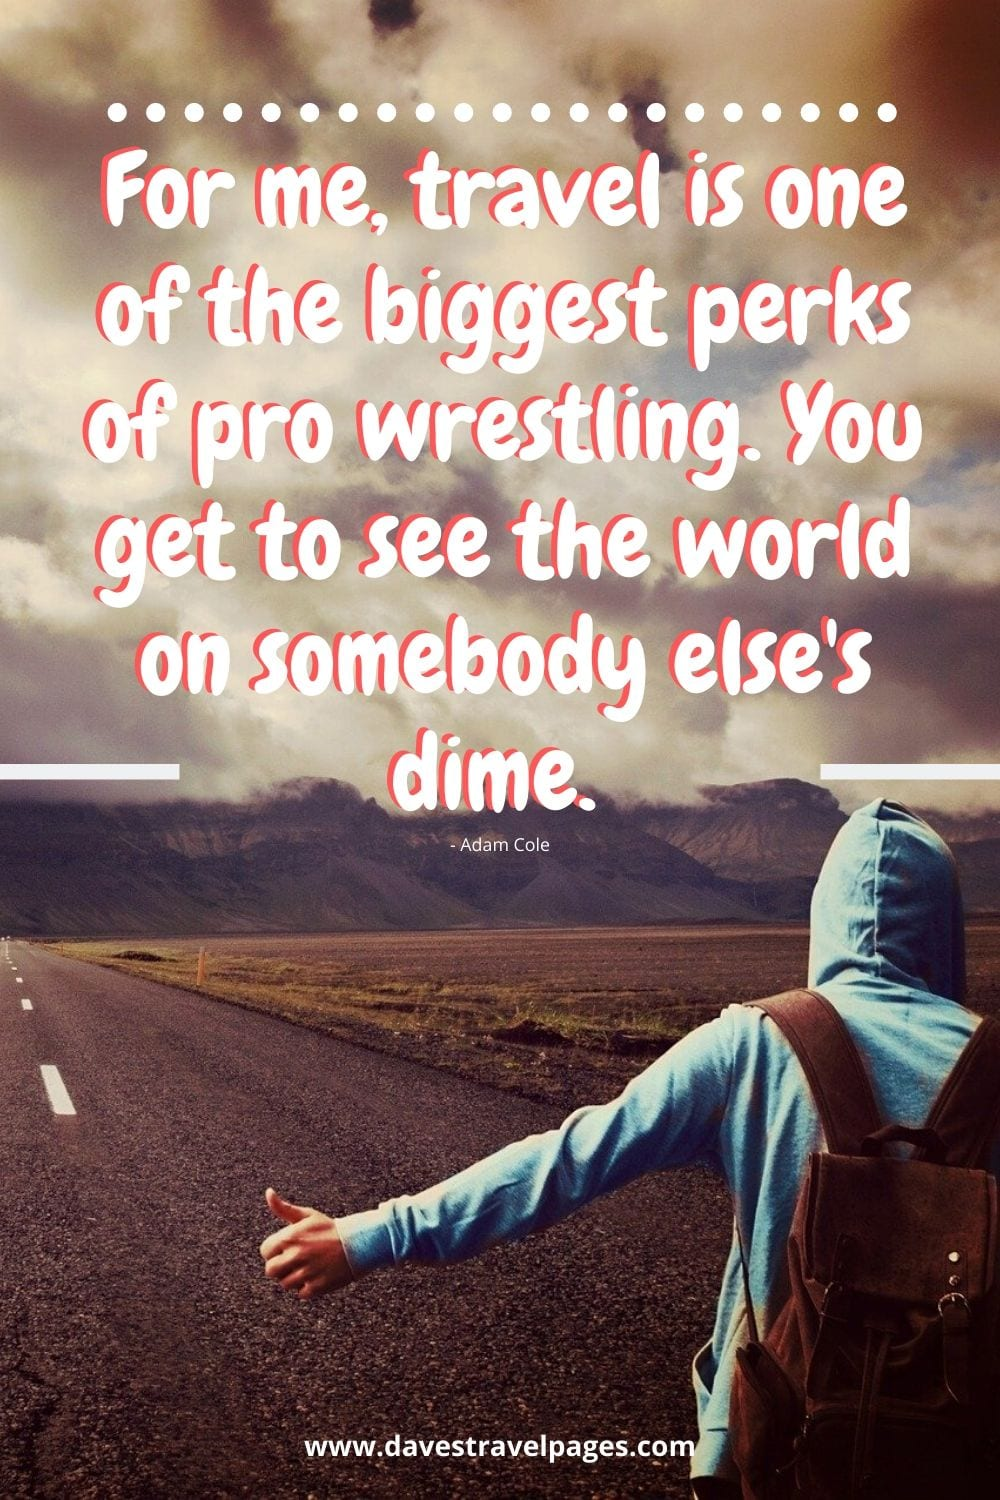 For me, travel is one of the biggest perks of pro wrestling. You get to see the world on somebody else's dime. Adam Cole